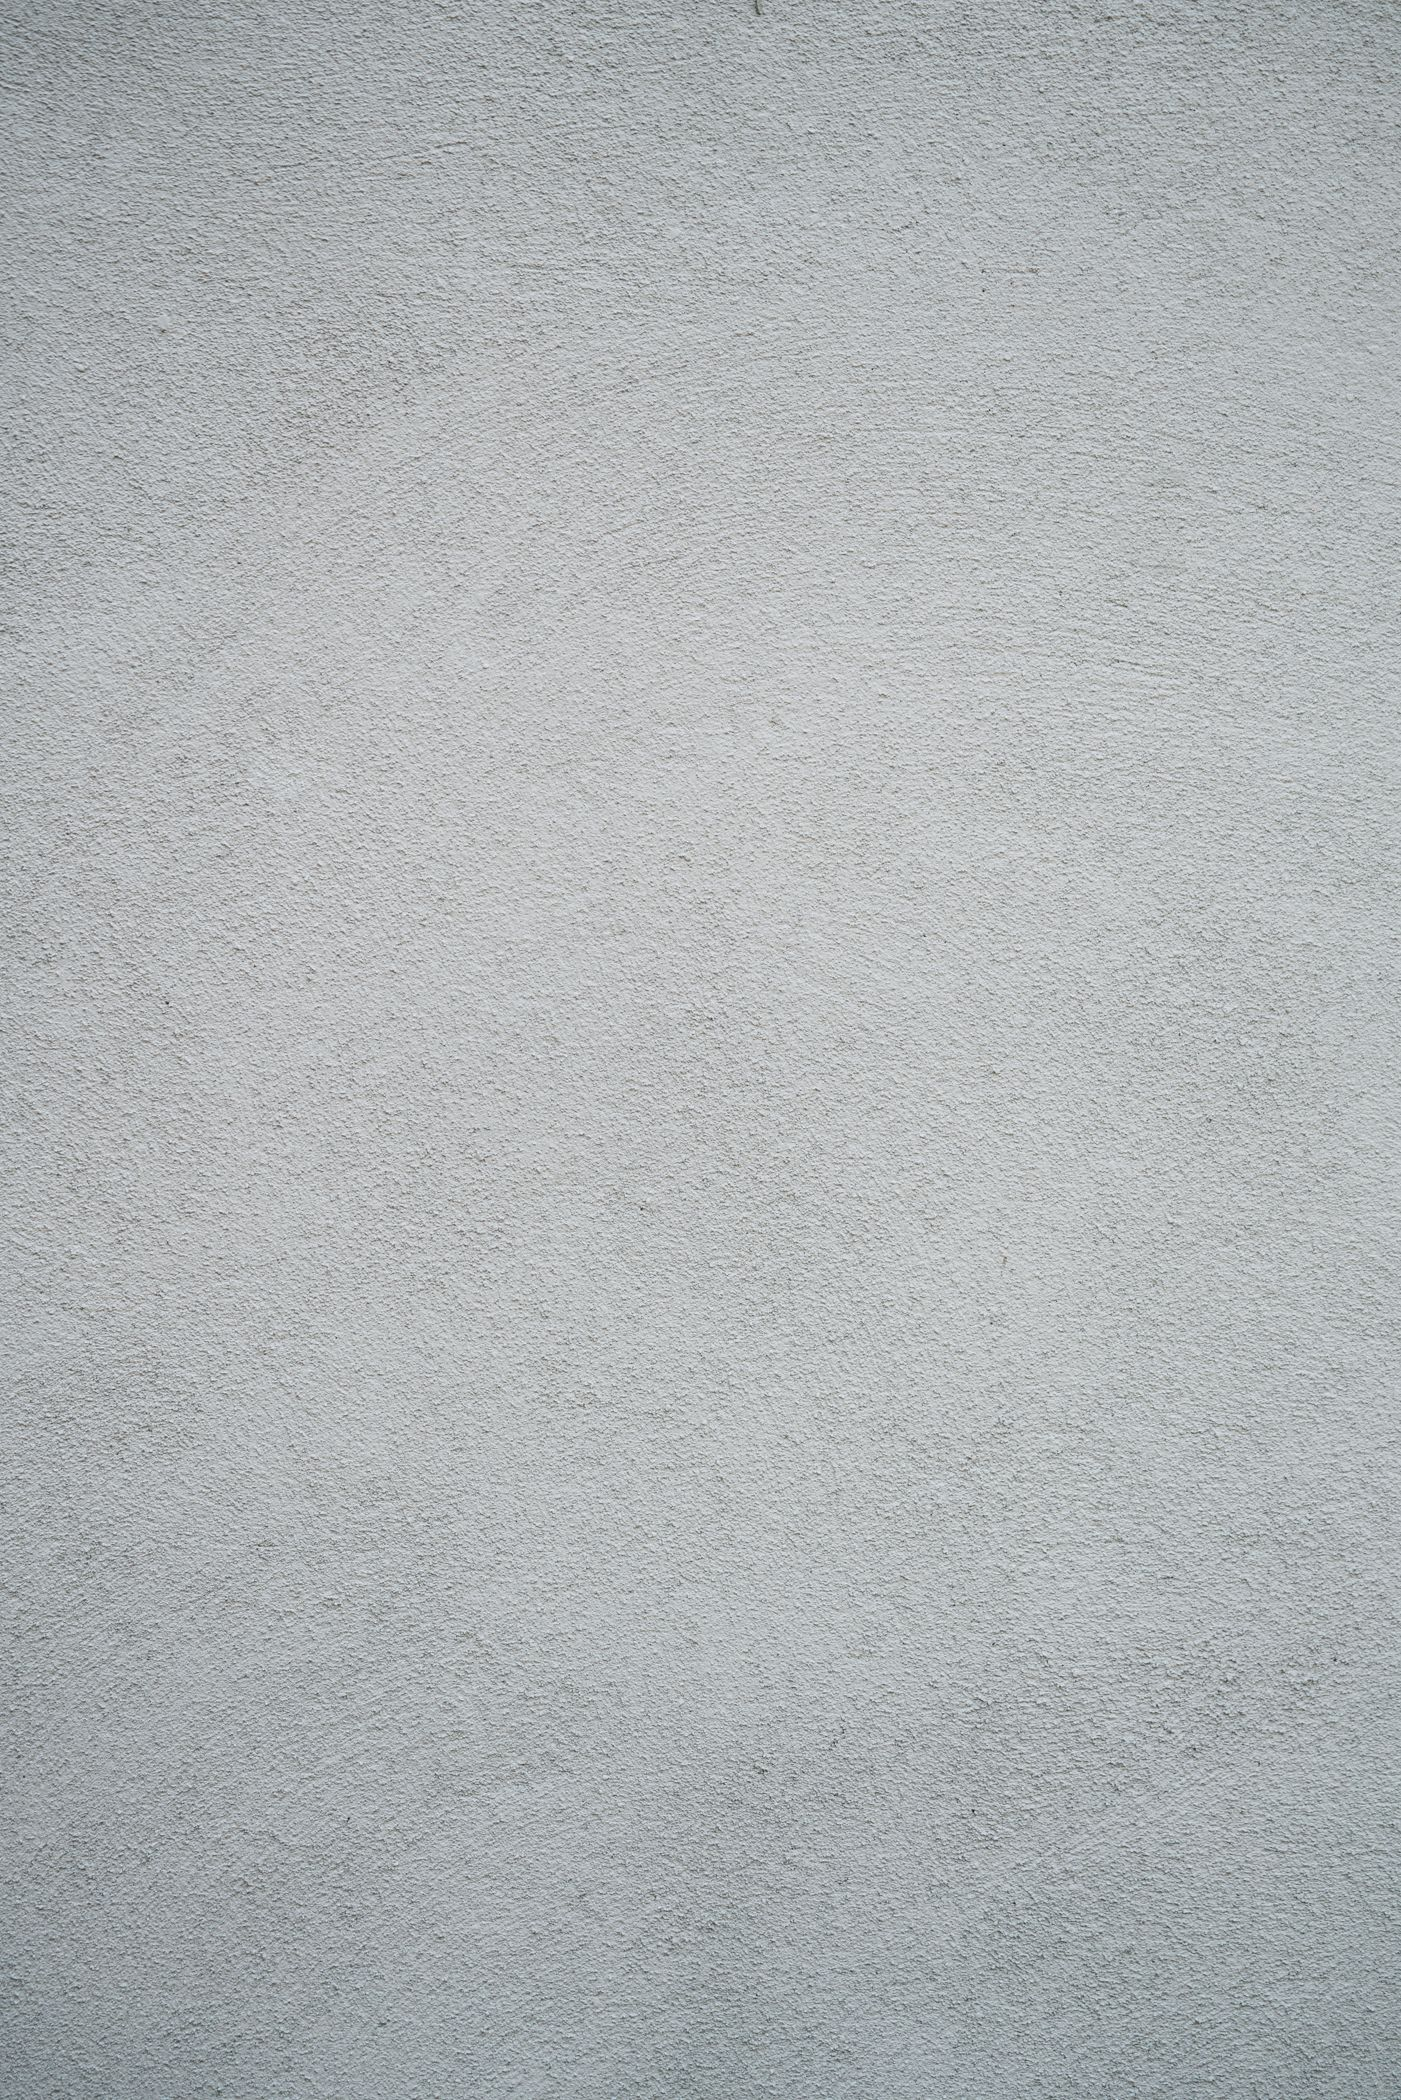 Grey / gray blank textured plaster background